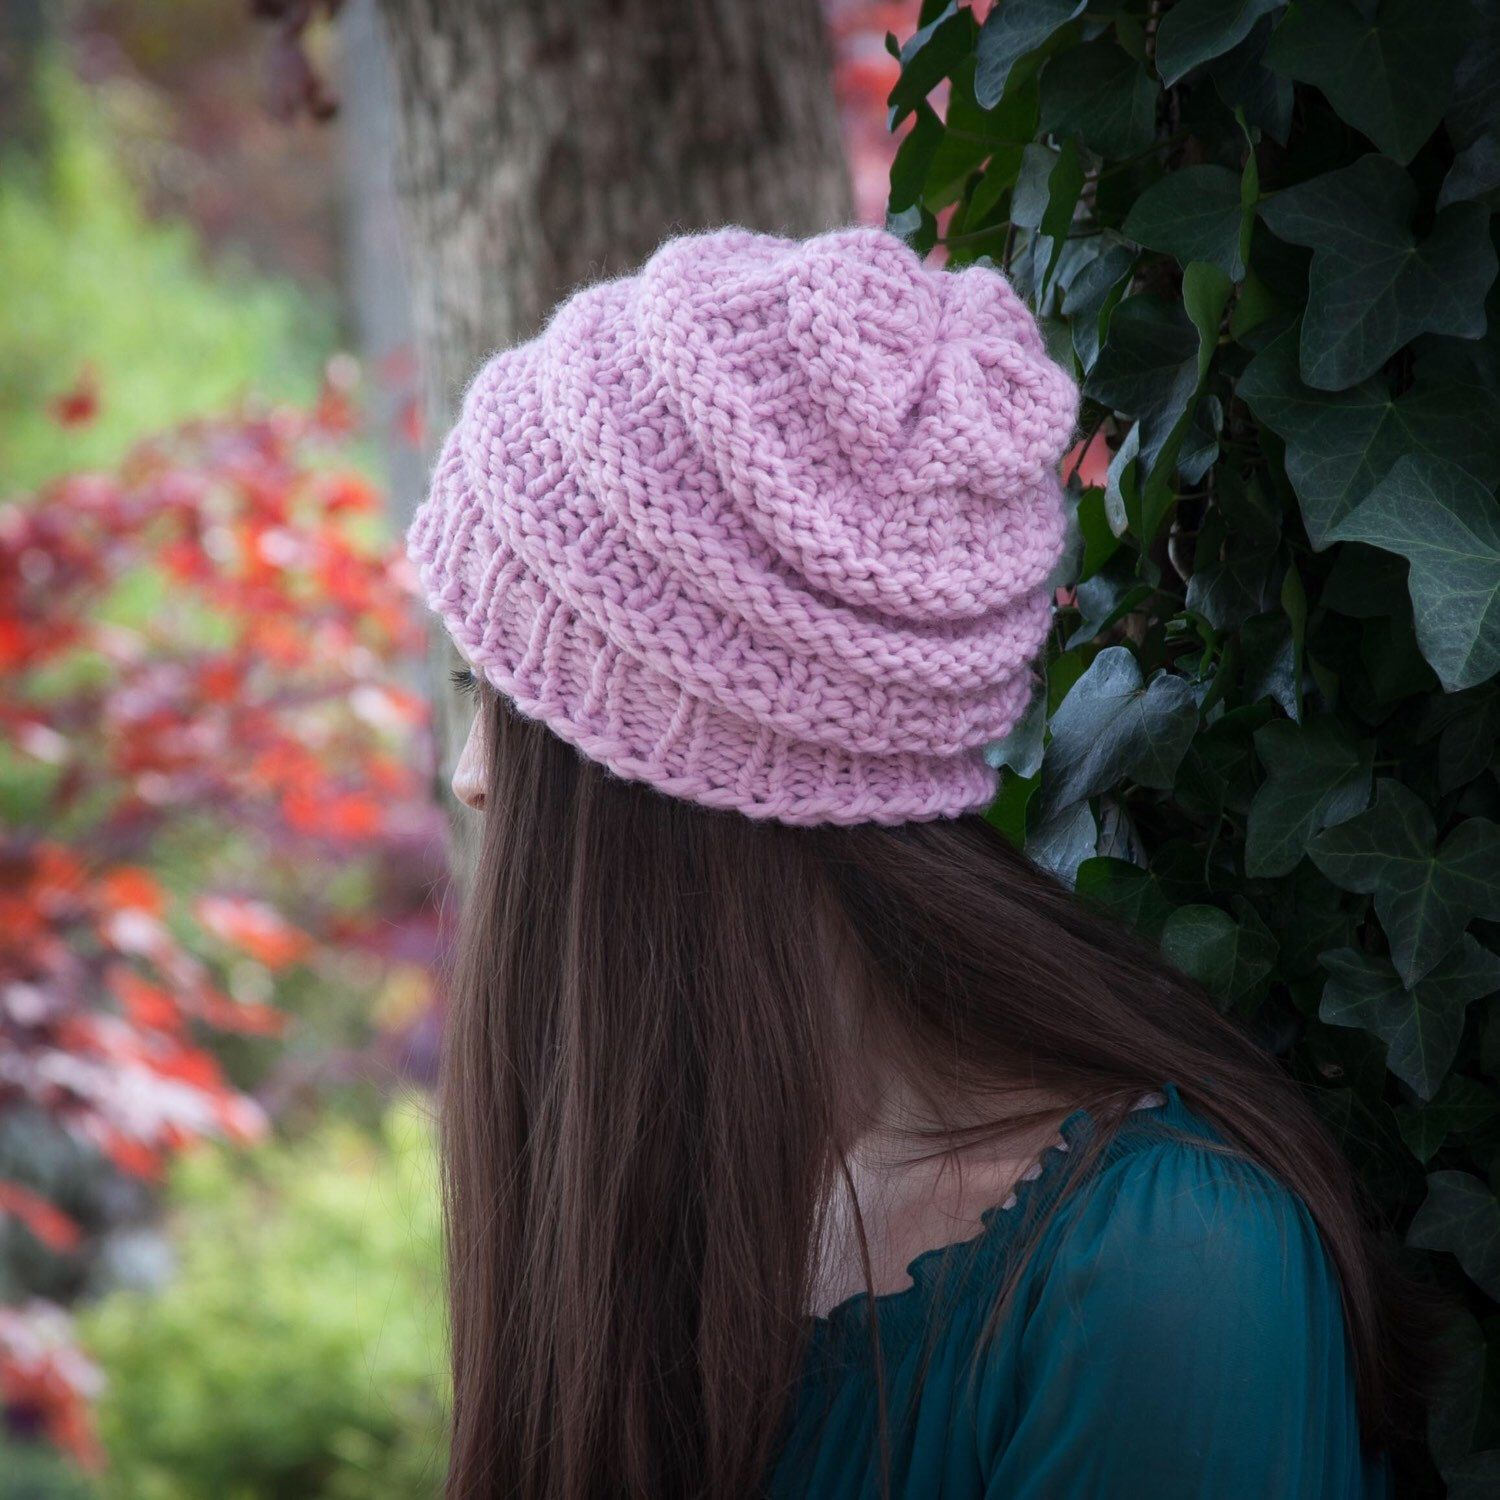 Just one of the loom knit hat patterns in this awesome collection ...